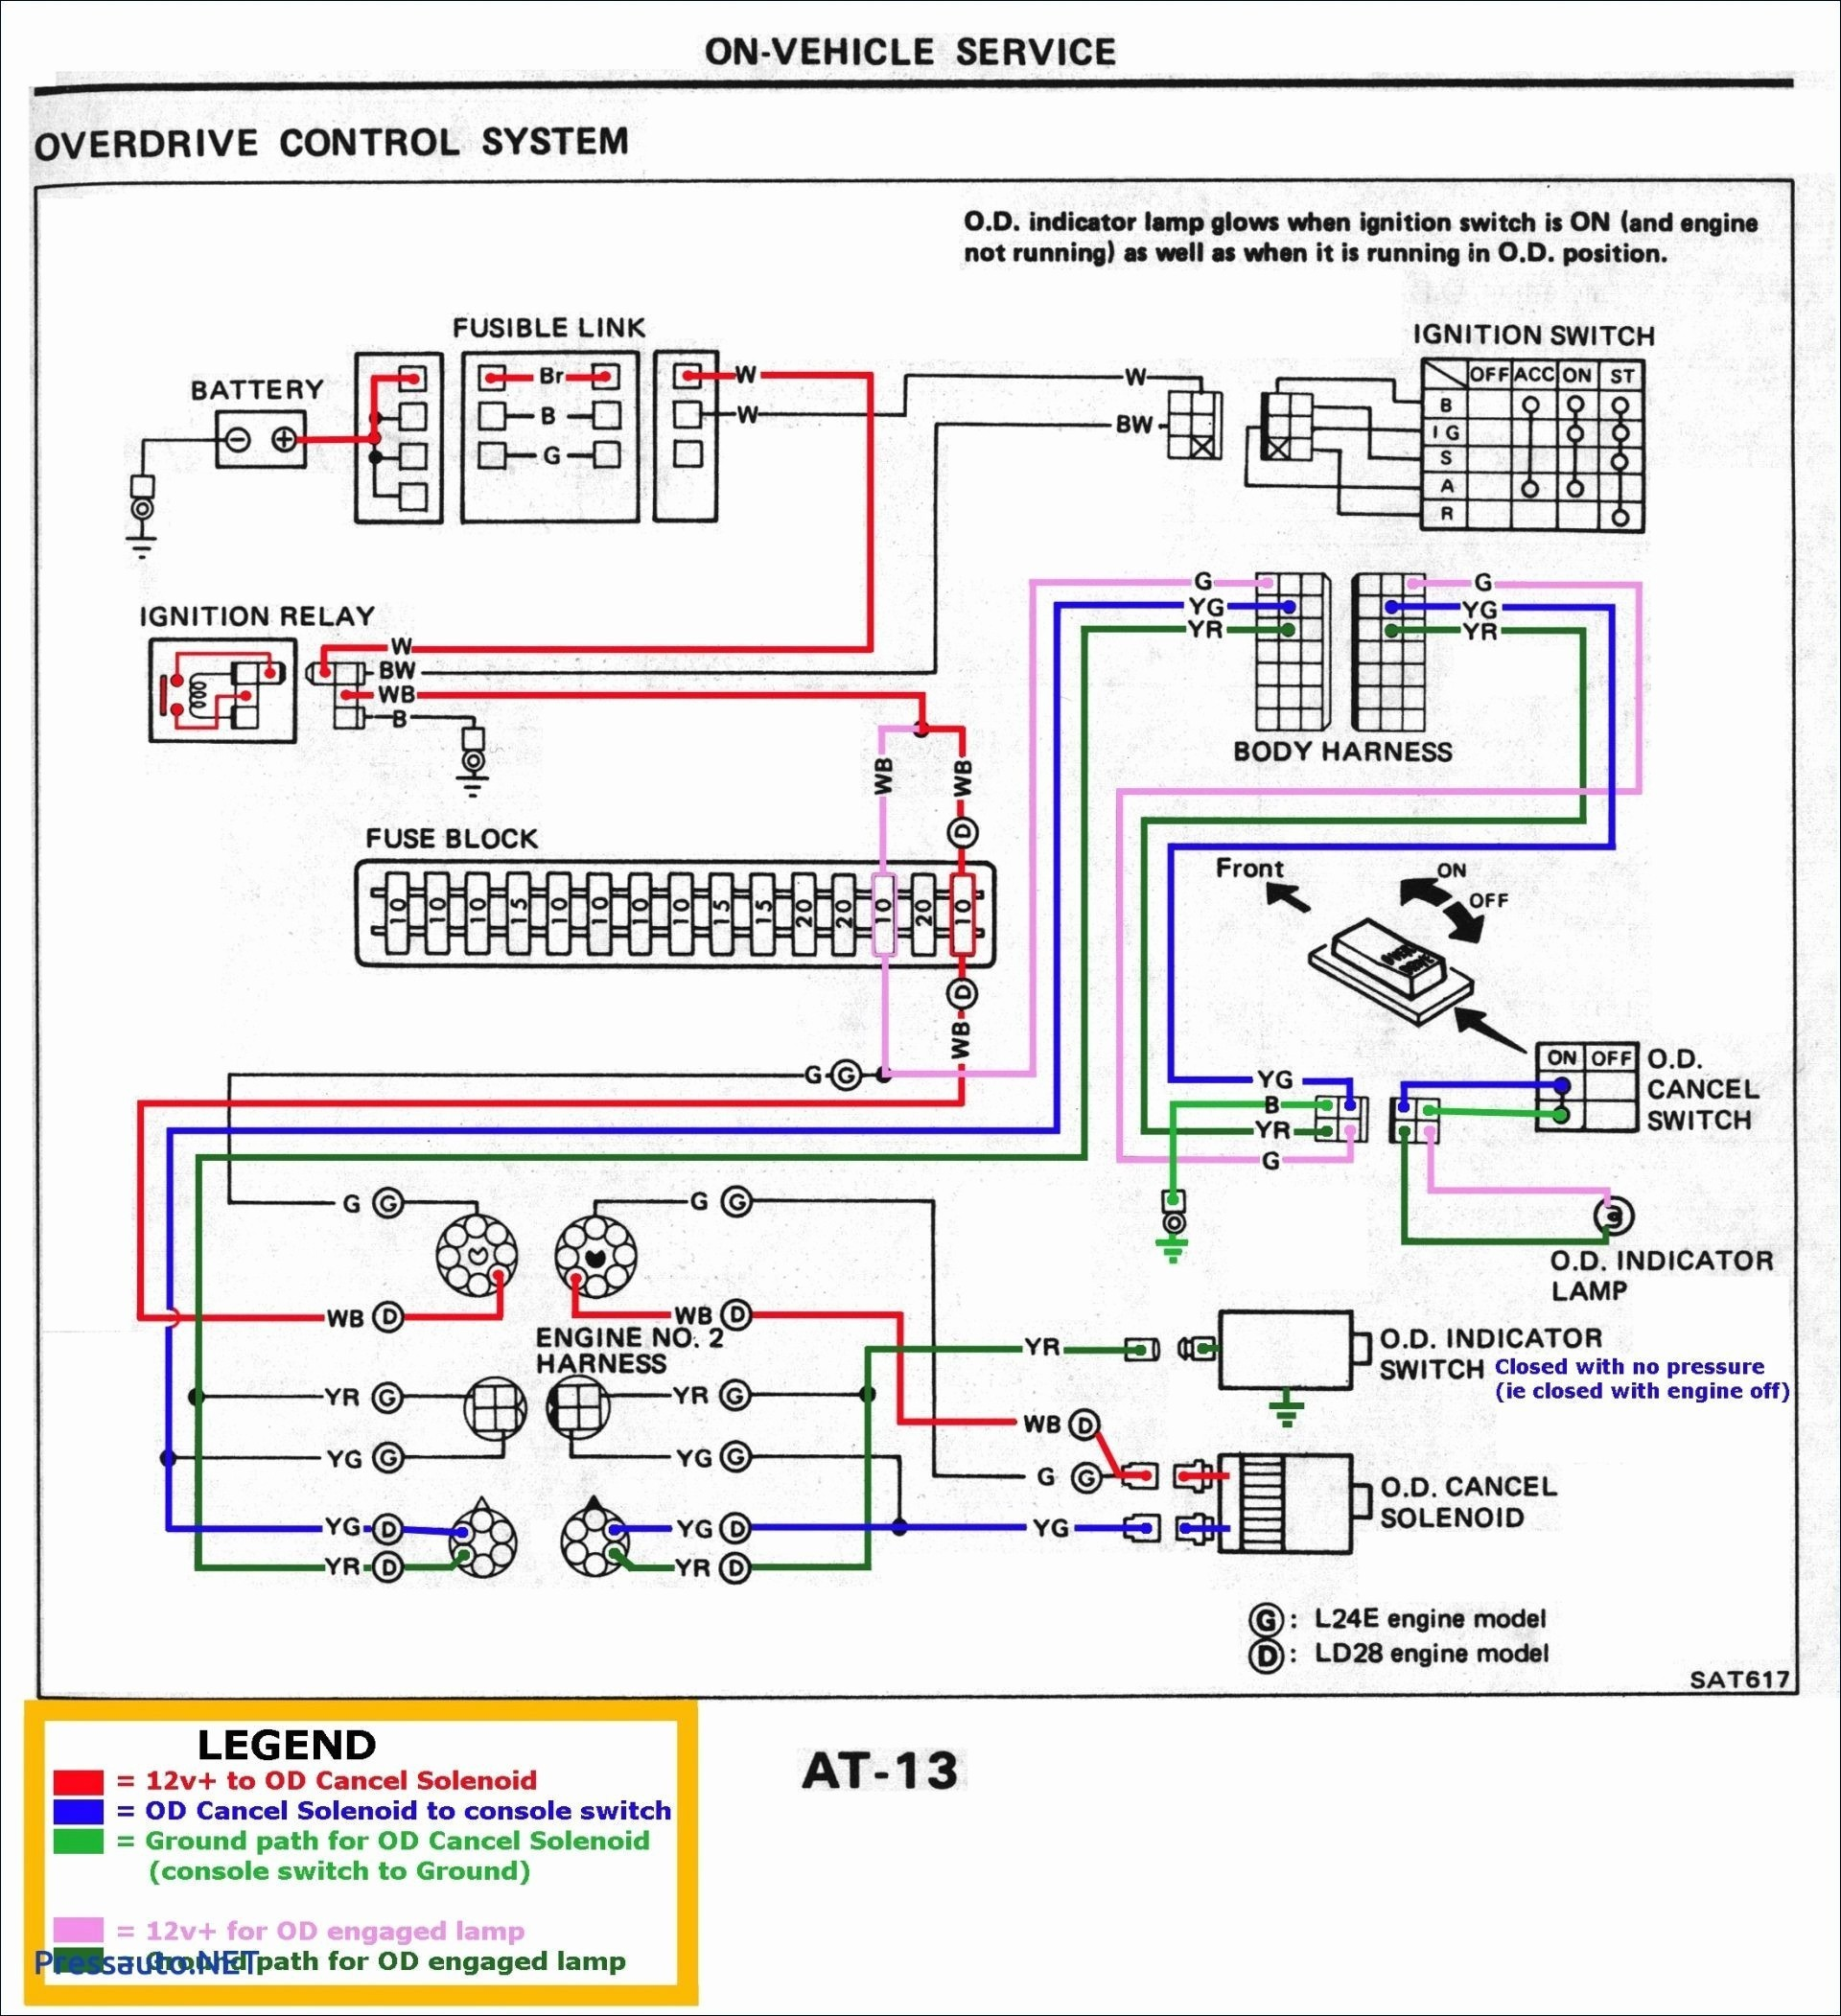 2007 Hyundai Santa Fe Engine Diagram Wiring Diagram 2003 Hyundai Tiburon 2 0l Schematics Wiring Diagrams • Of 2007 Hyundai Santa Fe Engine Diagram Wiring Diagram for 2005 Hyundai Santa Fe 3 5 Schematics Wiring